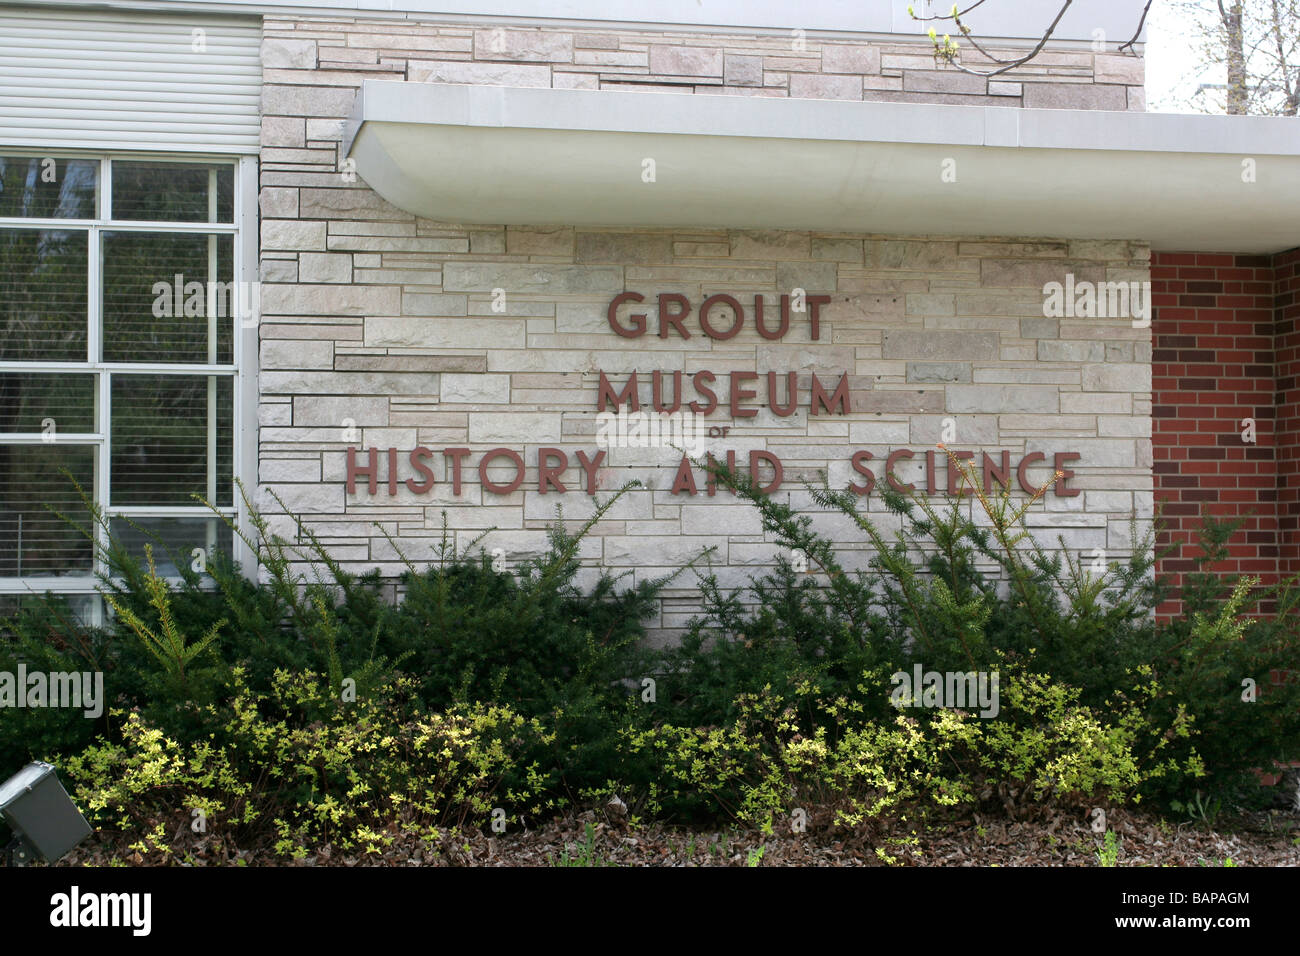 Grout Museum of History and Science Waterloo Iowa - Stock Image